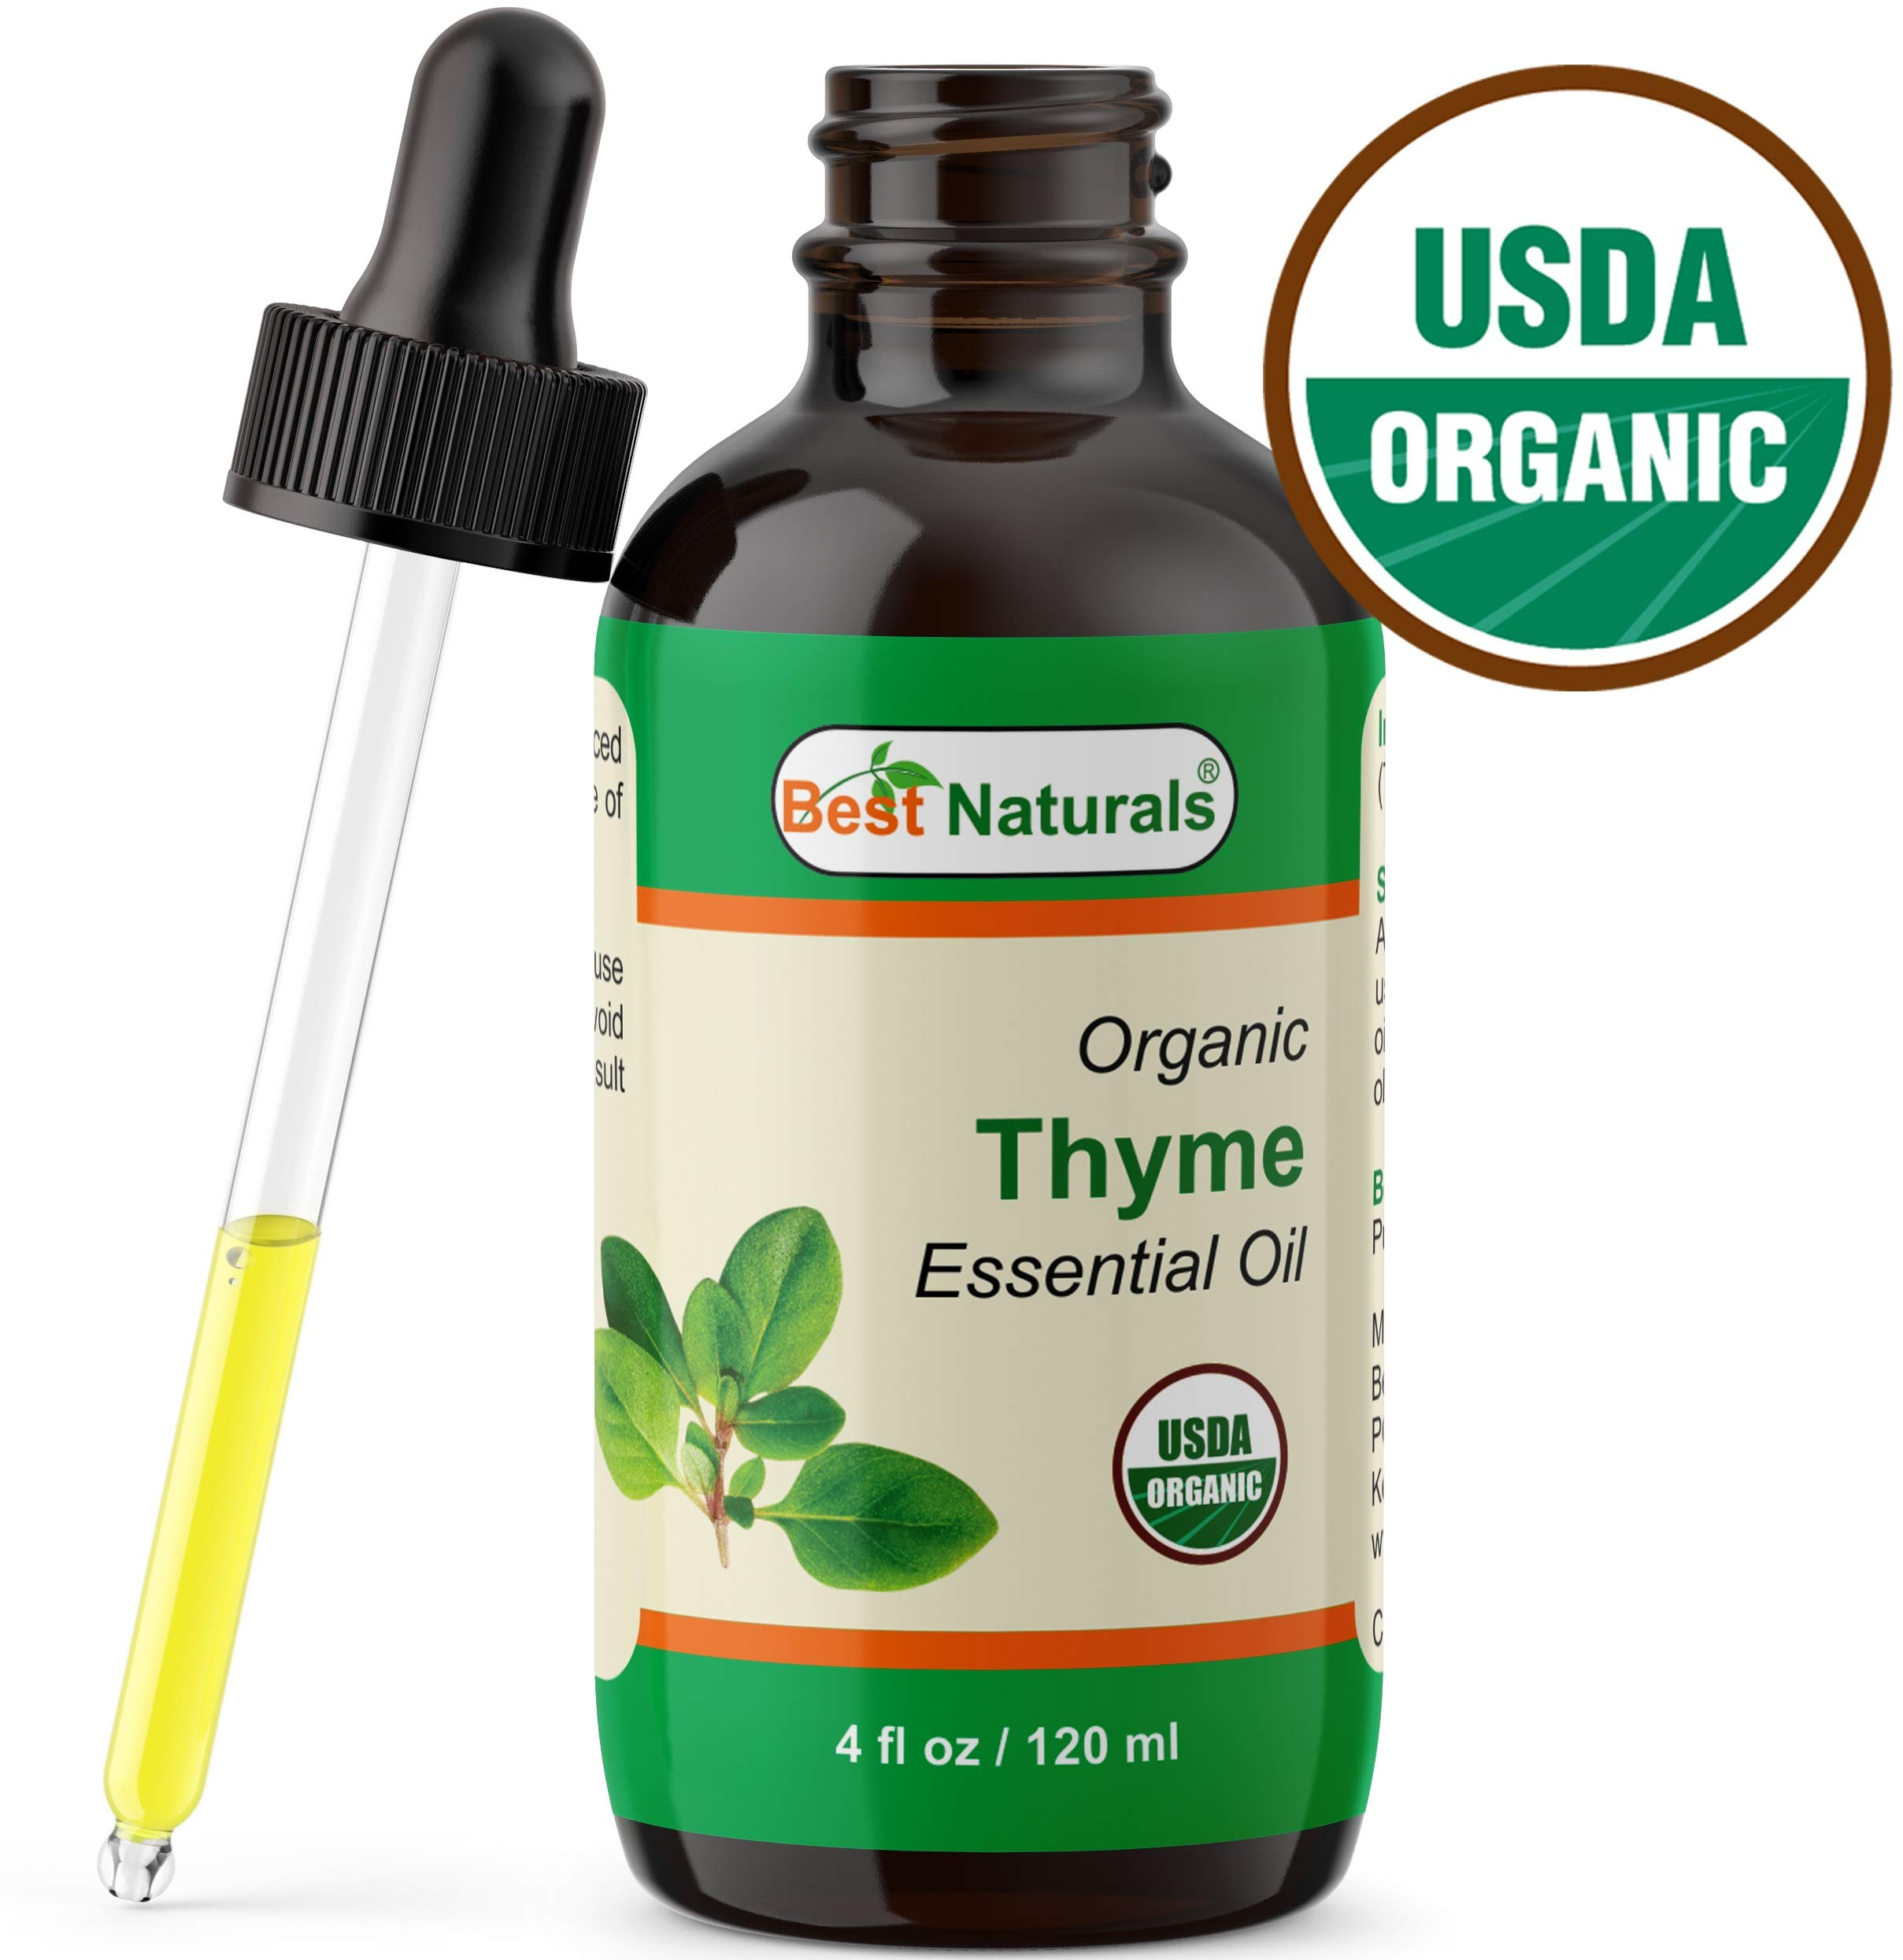 Best Naturals Certified Organic Thyme Essential Oil with Glass Dropper Thyme 4 FL OZ (120 ml) by Best Naturals